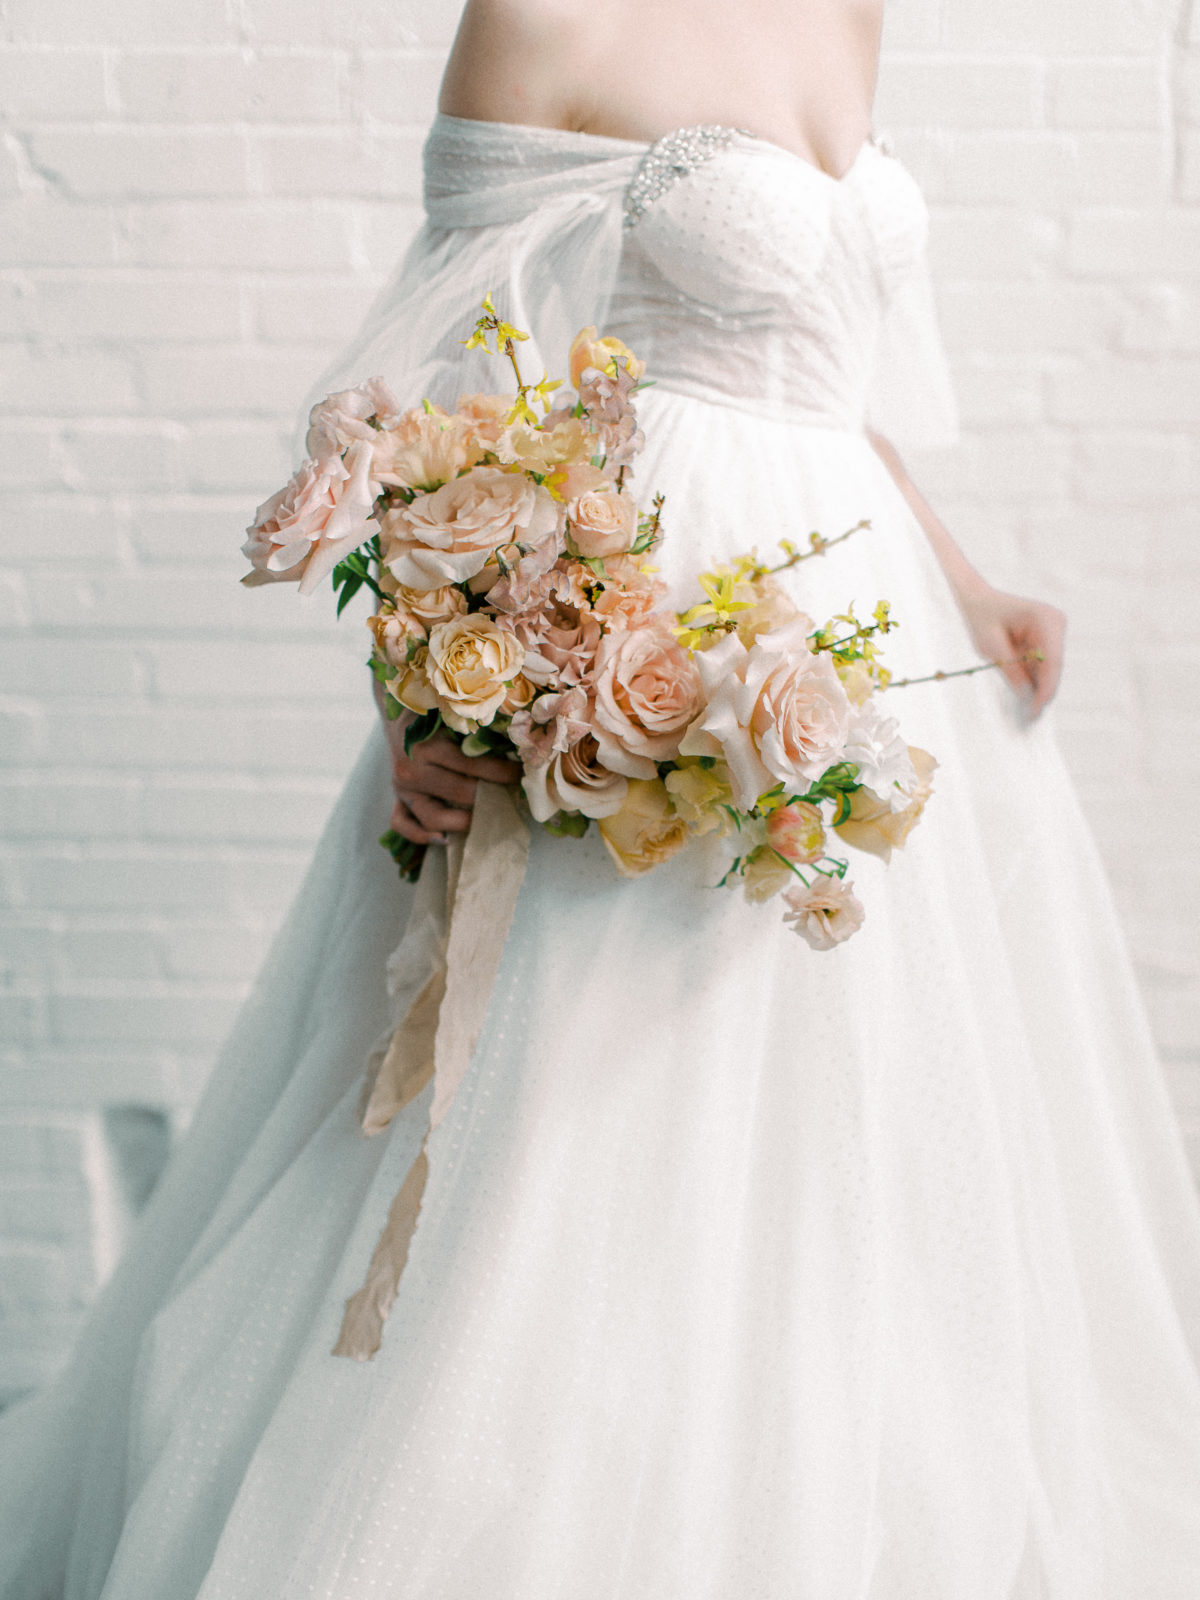 Whimsical wedding bouquet: Whimsical Wedding Inspiration at The Place at Tyler from The Bridal Masterclass featured on Alexa Kay Events